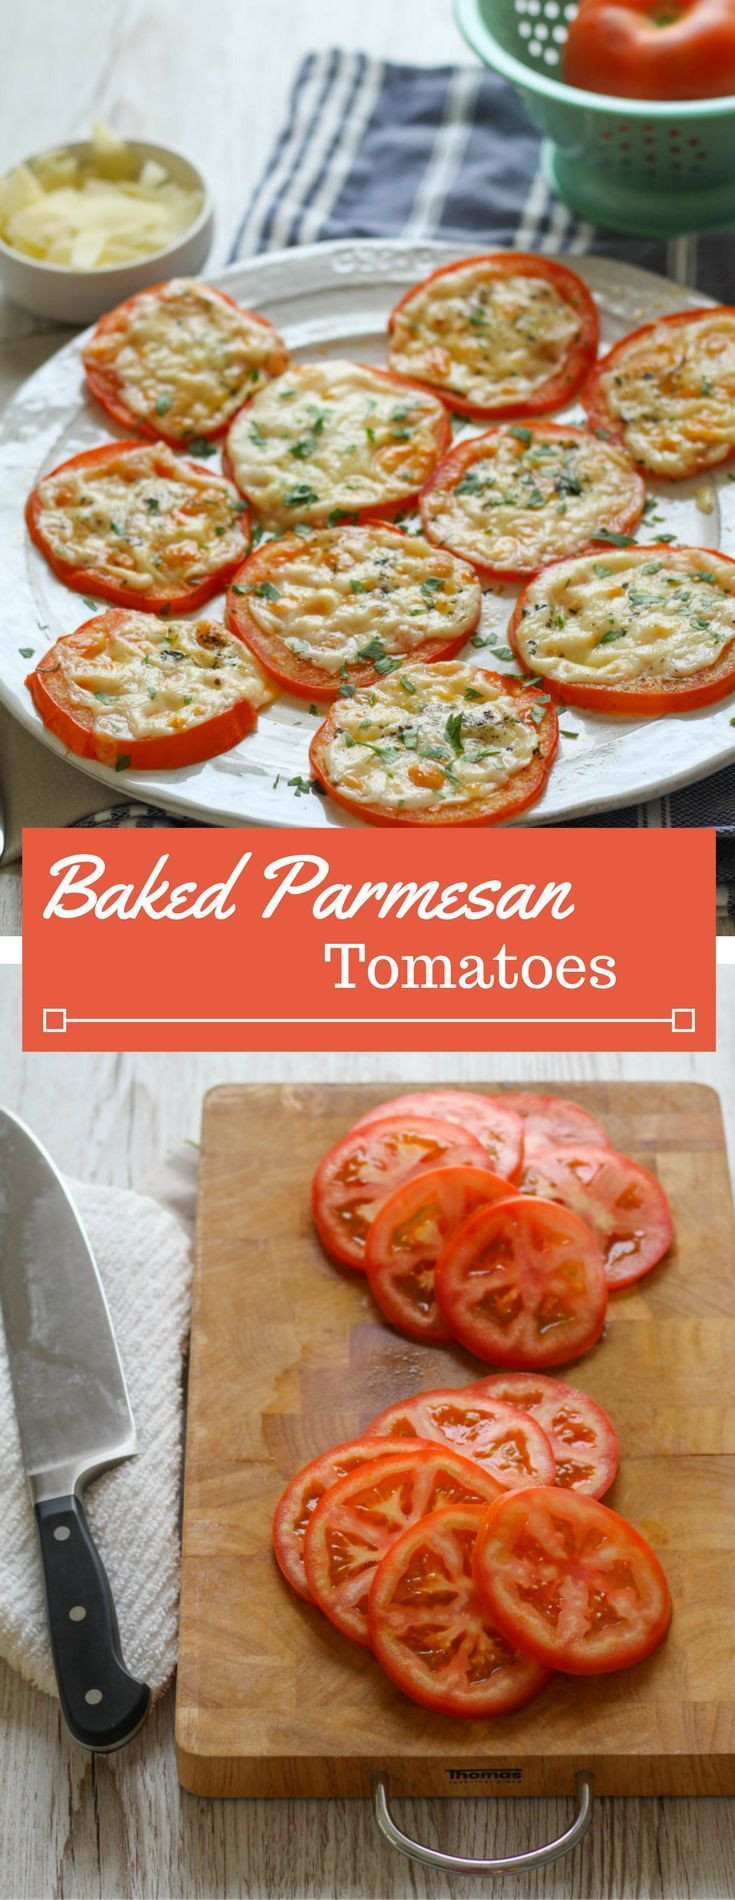 Healthy Sides For Baked Chicken  1154 best images about side dishes on Pinterest